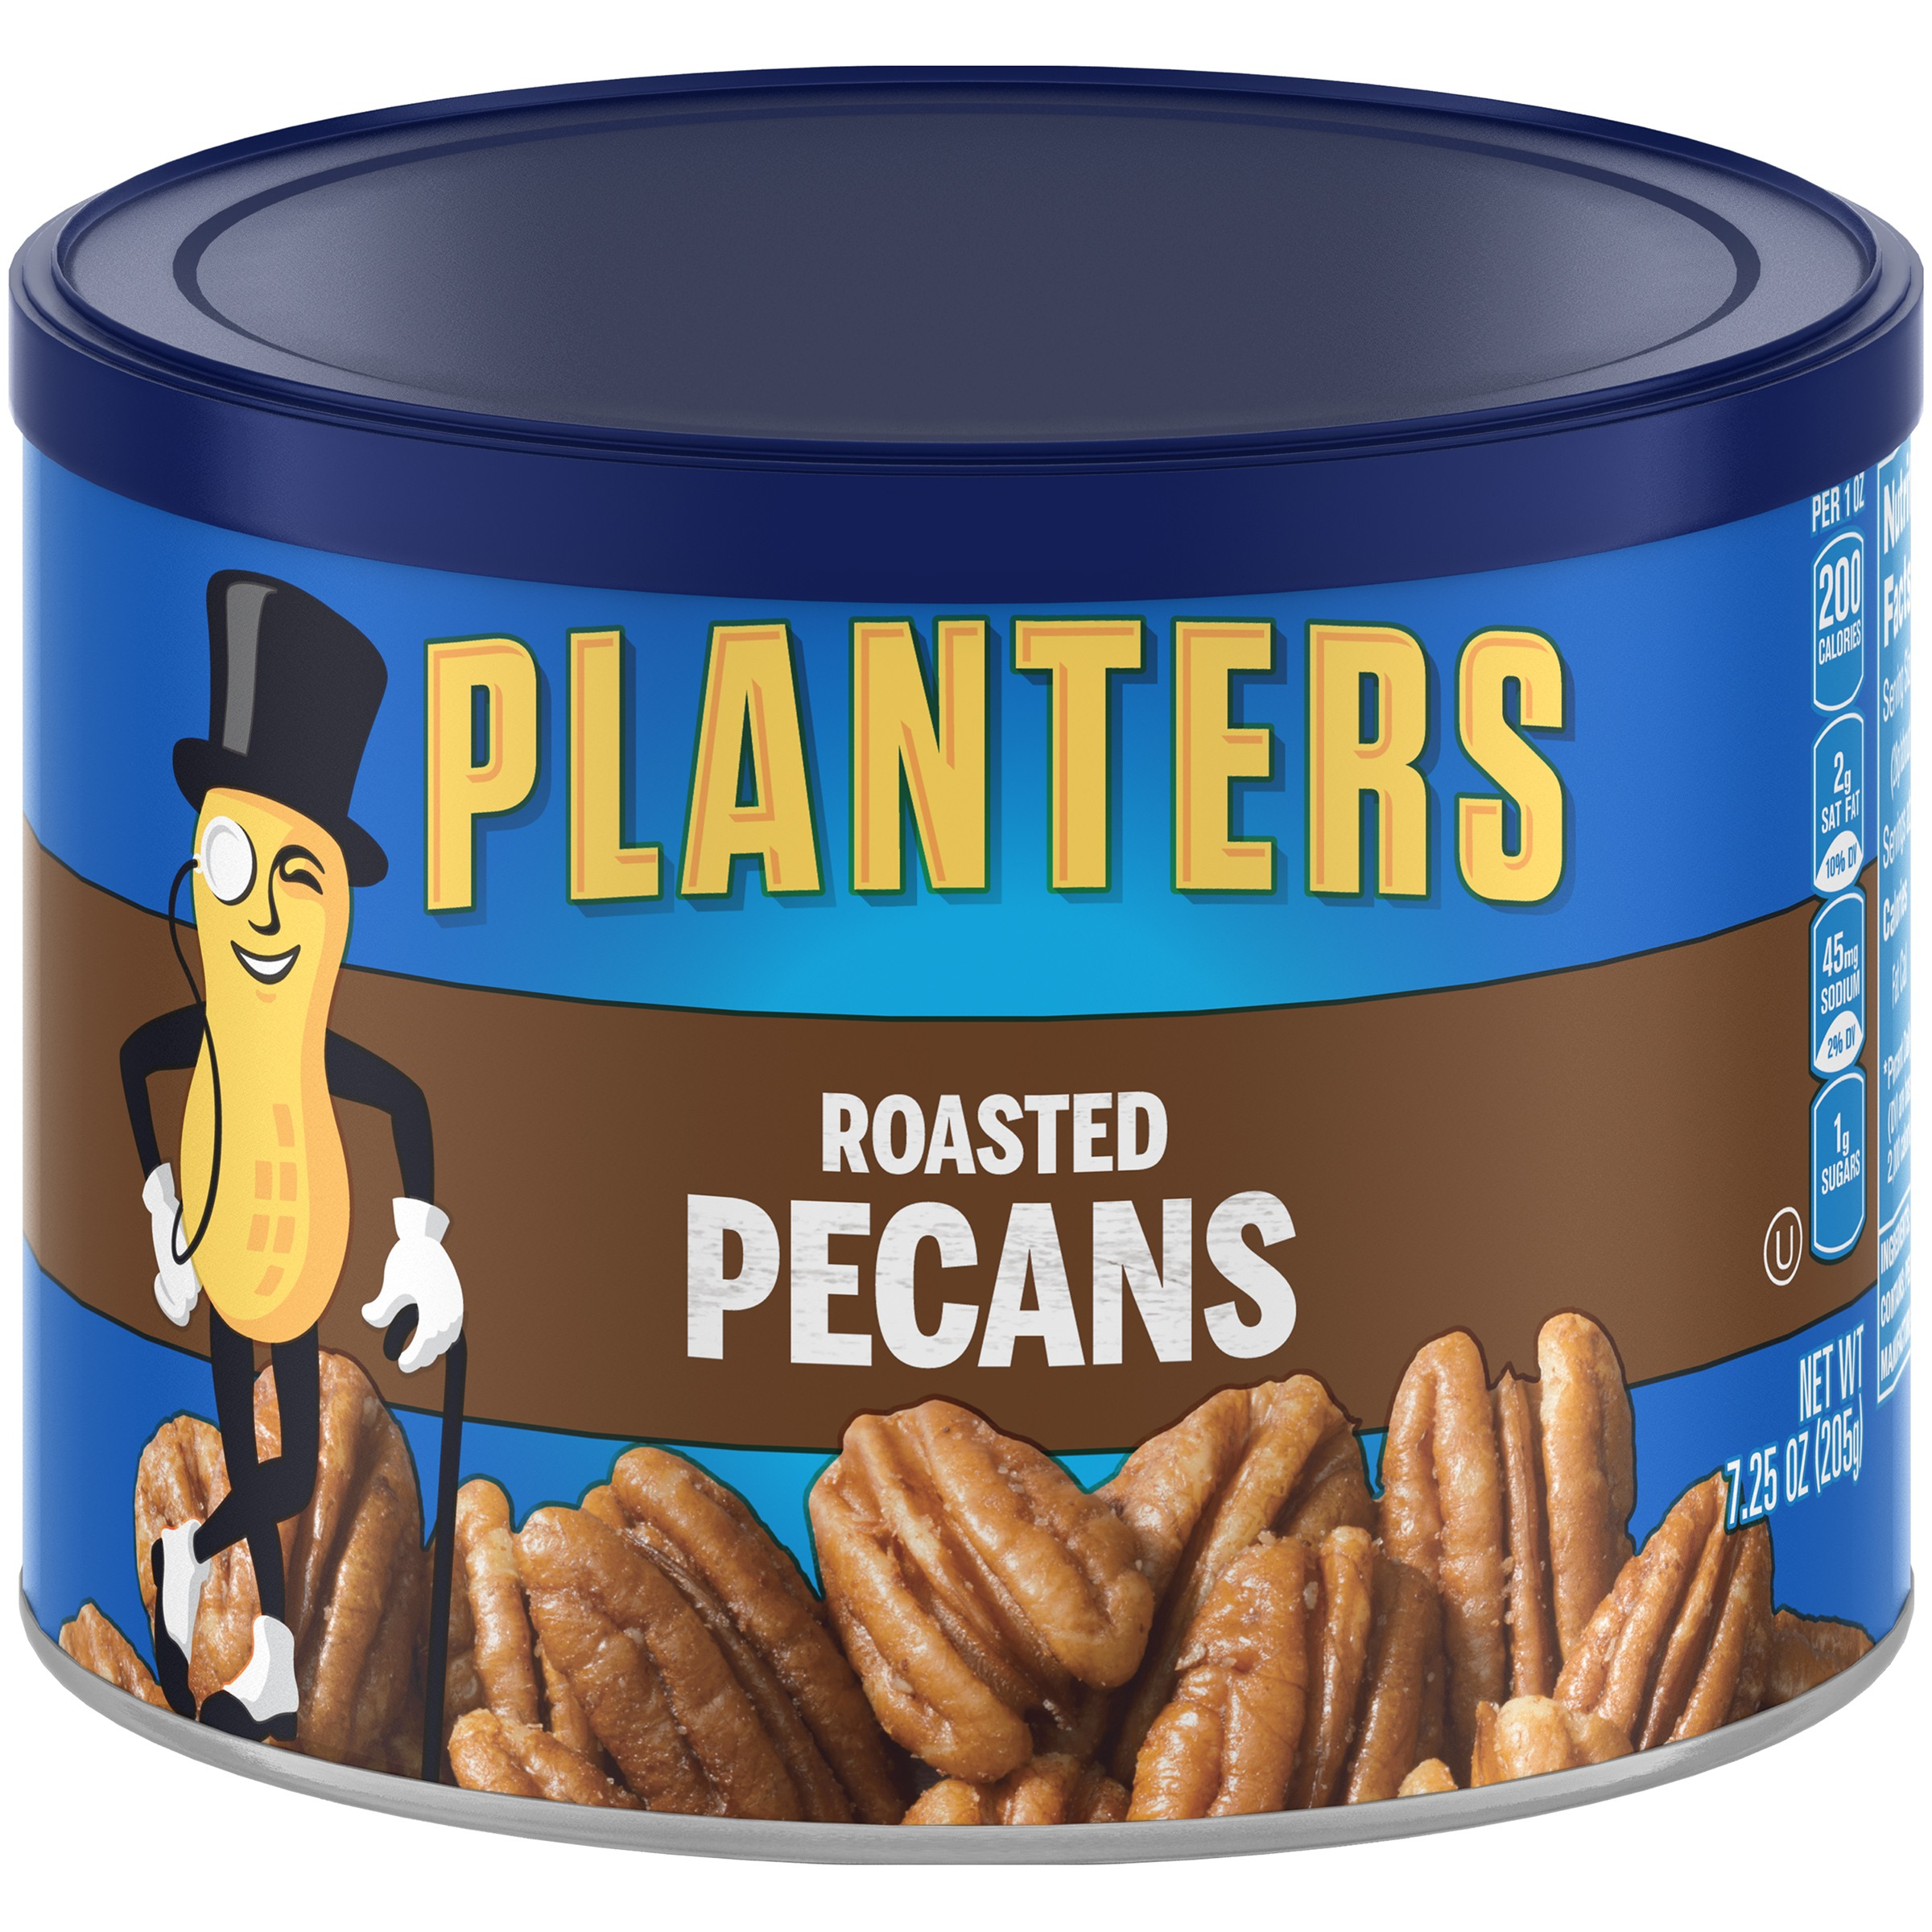 Planters Roasted Pecans 7.25 oz. Canister